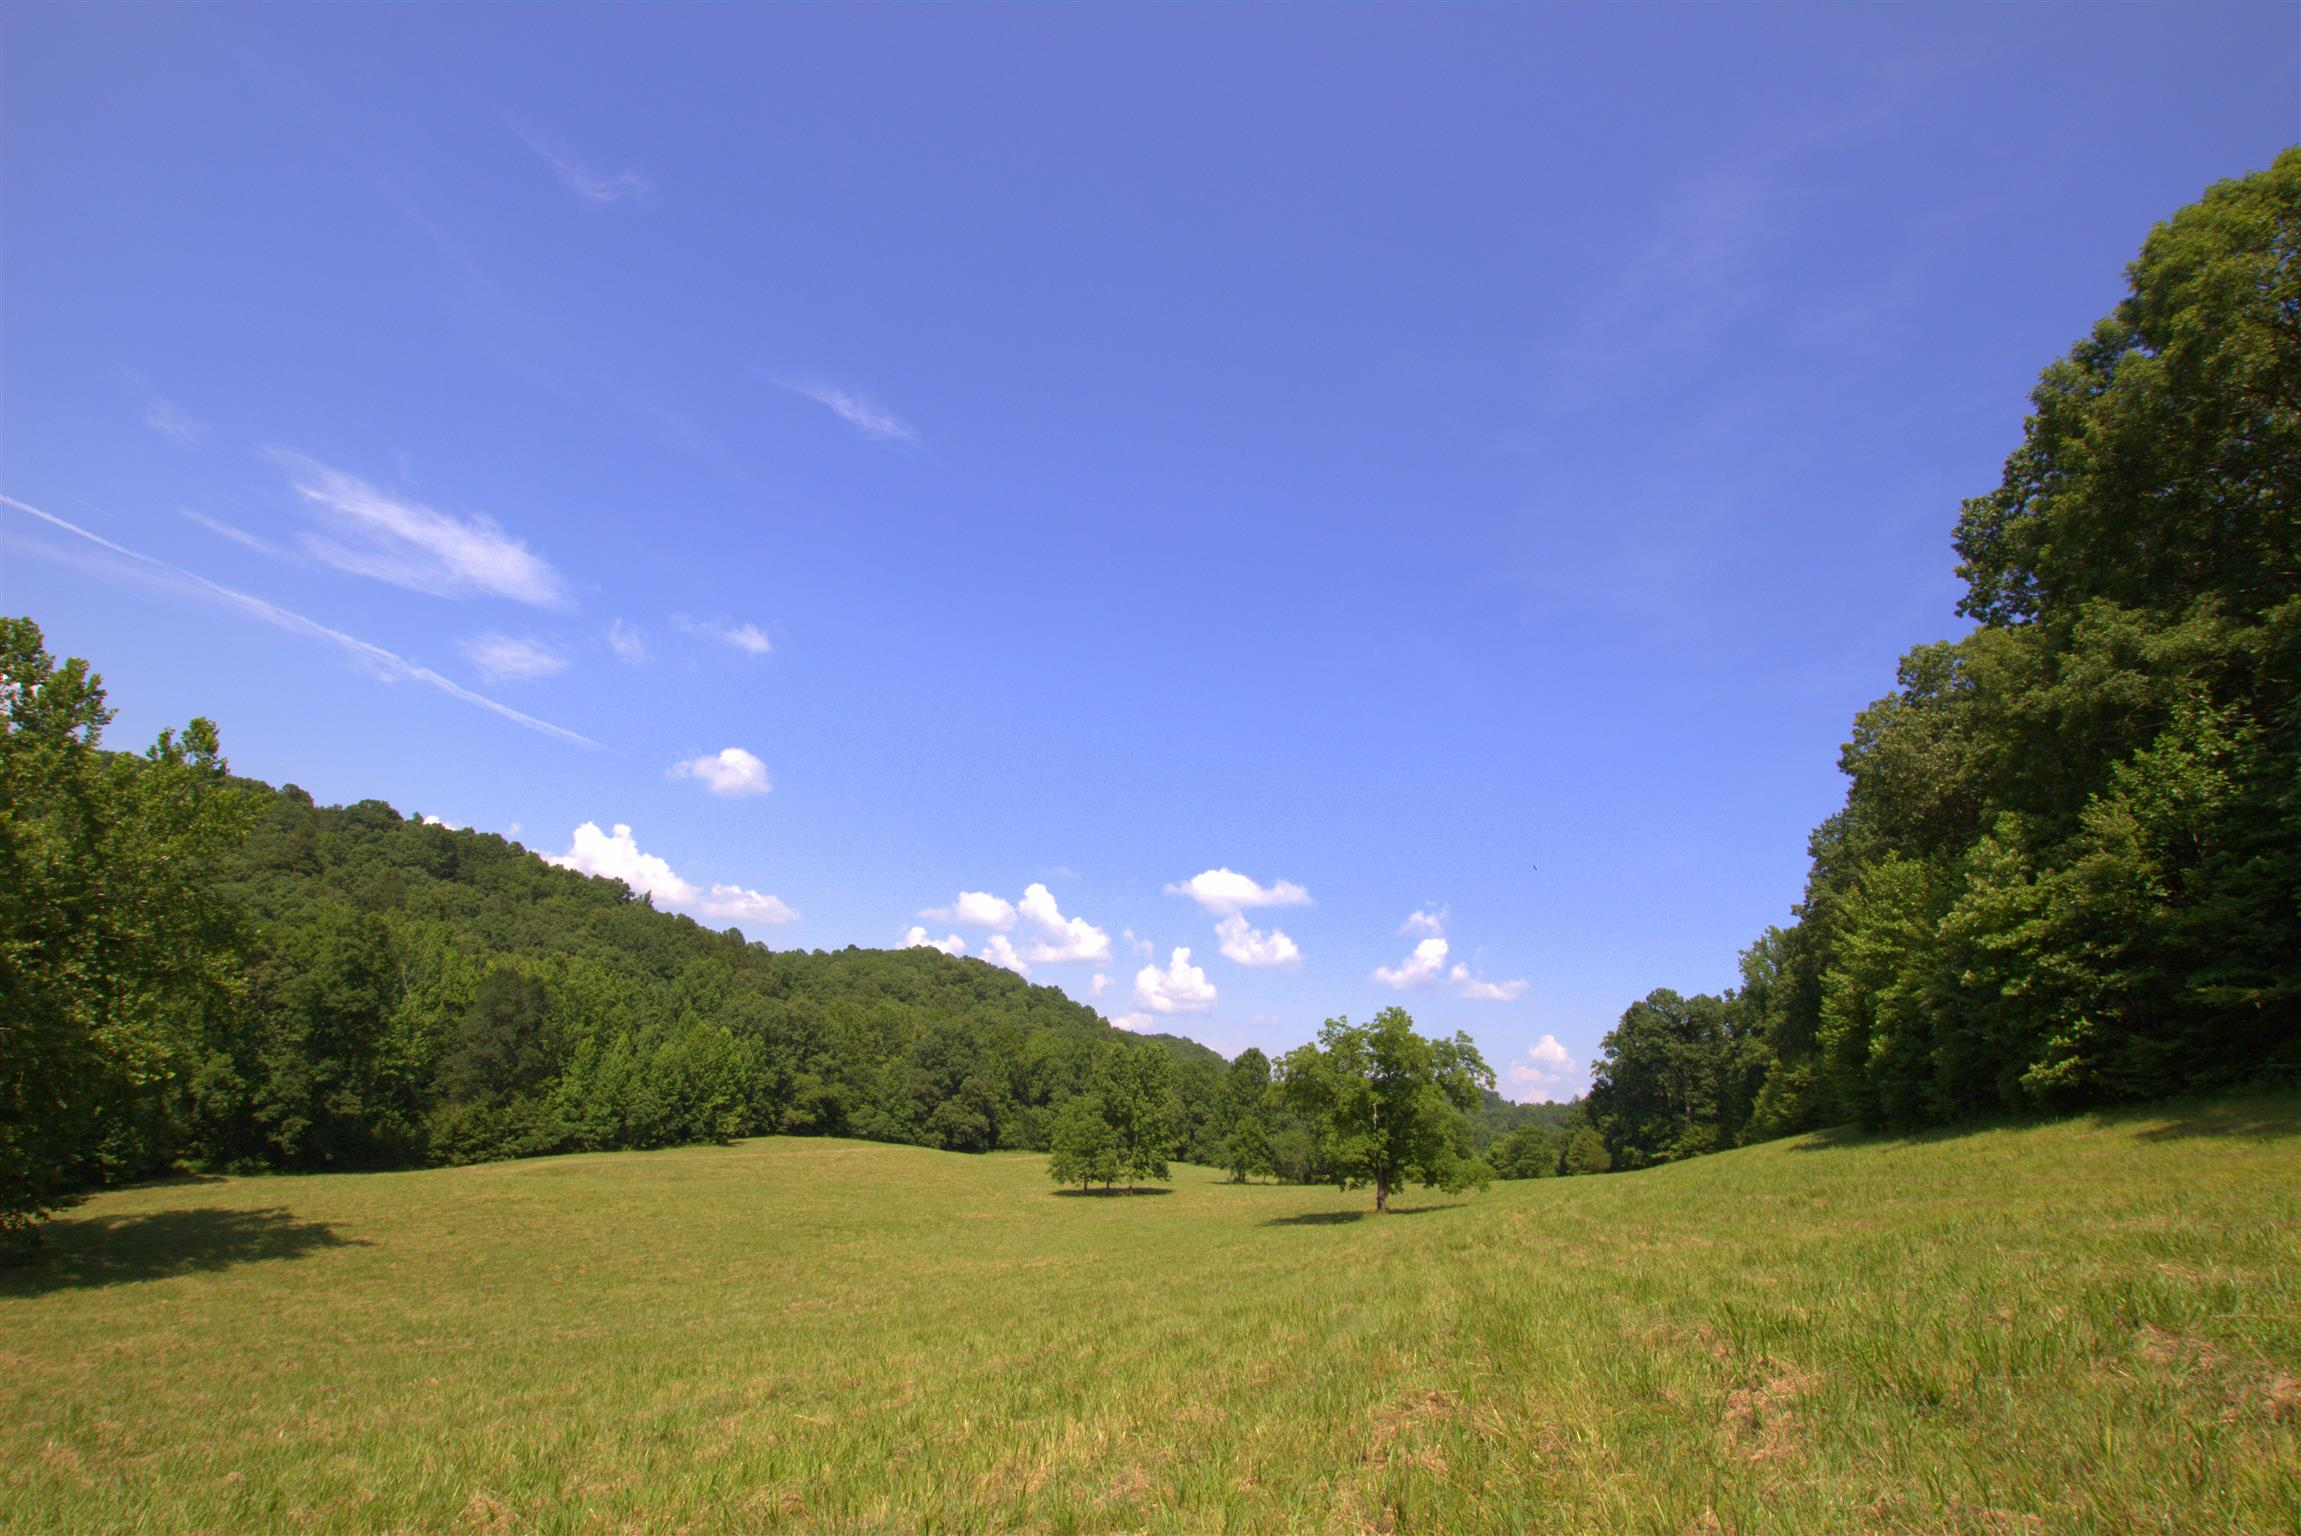 0 N Of Mill Creek Rd, Nunnelly, TN 37137 - Nunnelly, TN real estate listing